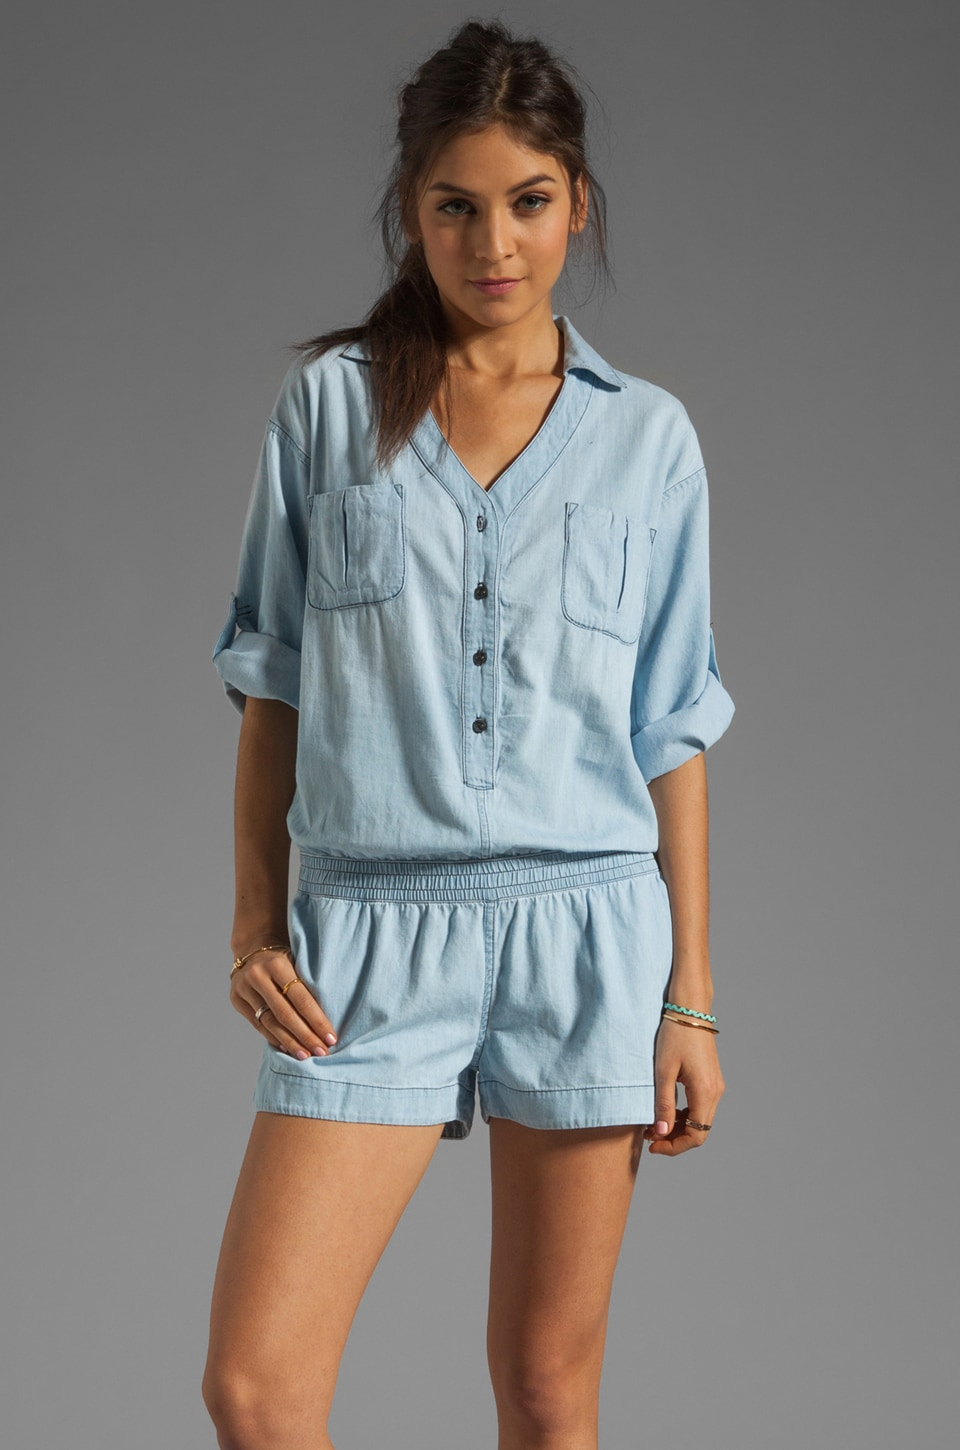 AG Adriano Goldschmied Chambray Romper in Cove